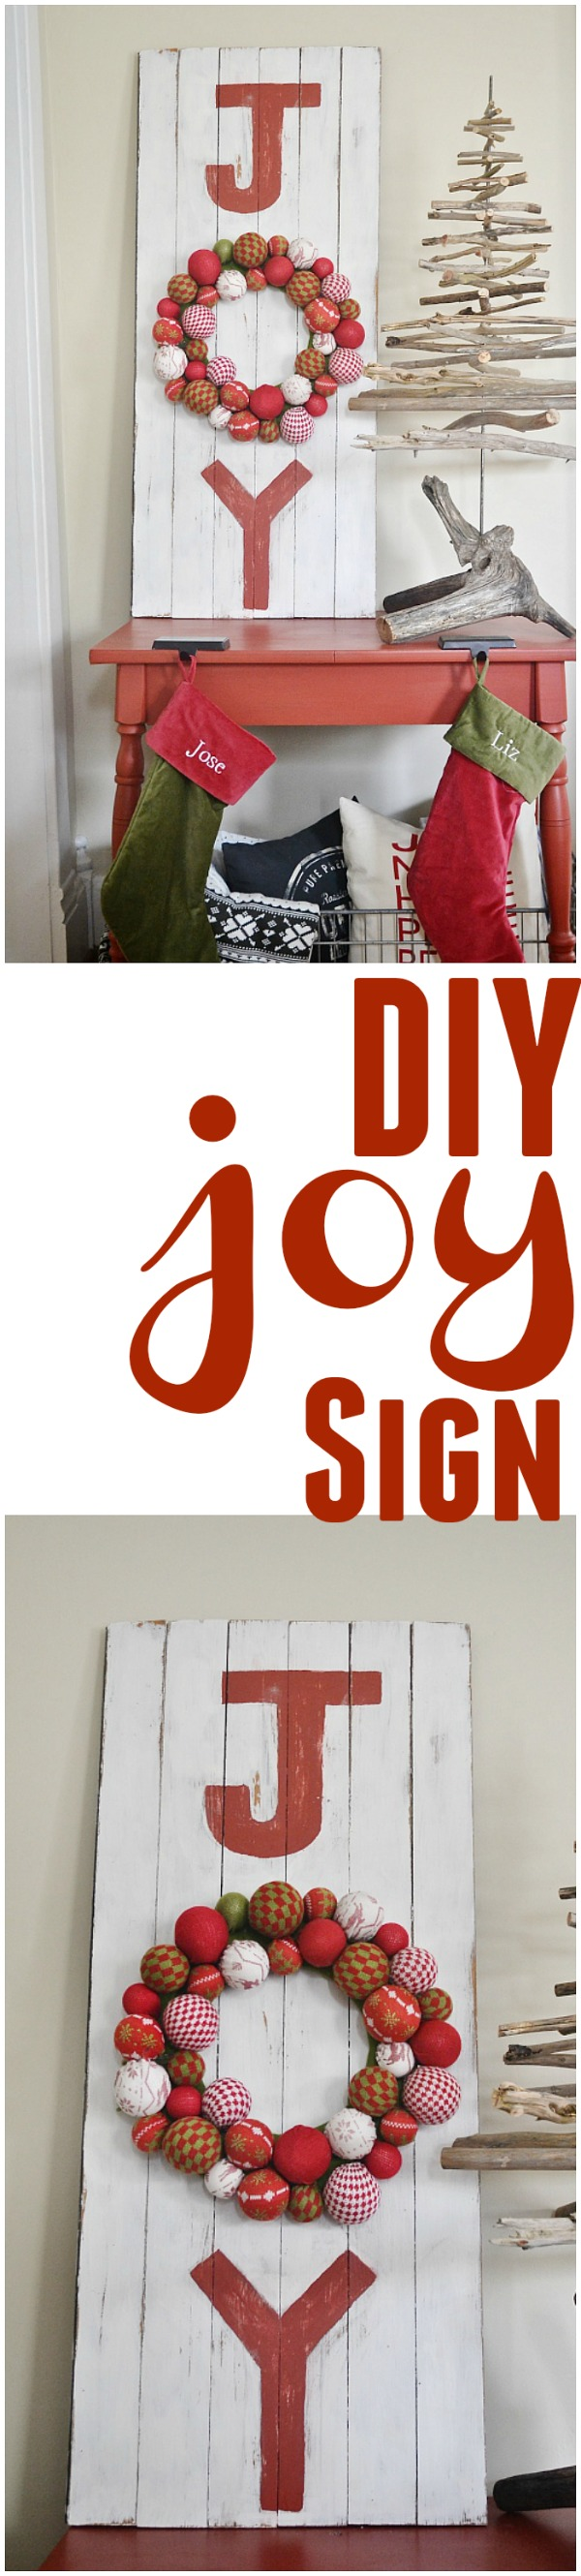 DIY Joy Sign - See how easy this really is to make! A must pin for all holiday decor!